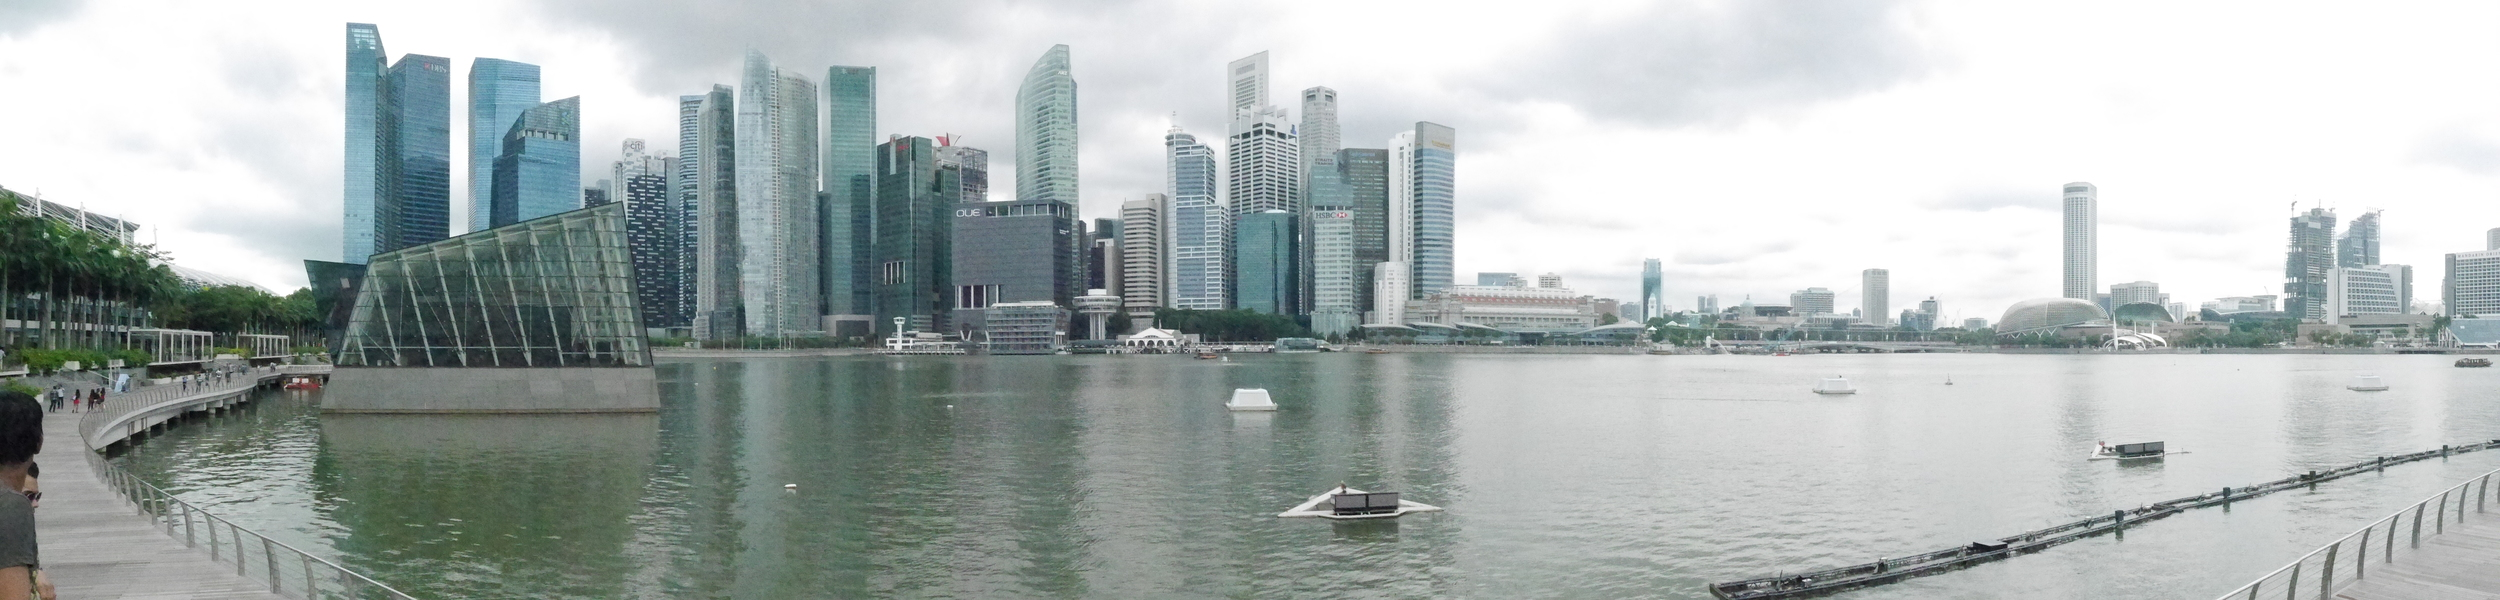 The Singapore skyline from the Marina Bay Sands shopping center. Also apparently a boat cutting through my panorama.